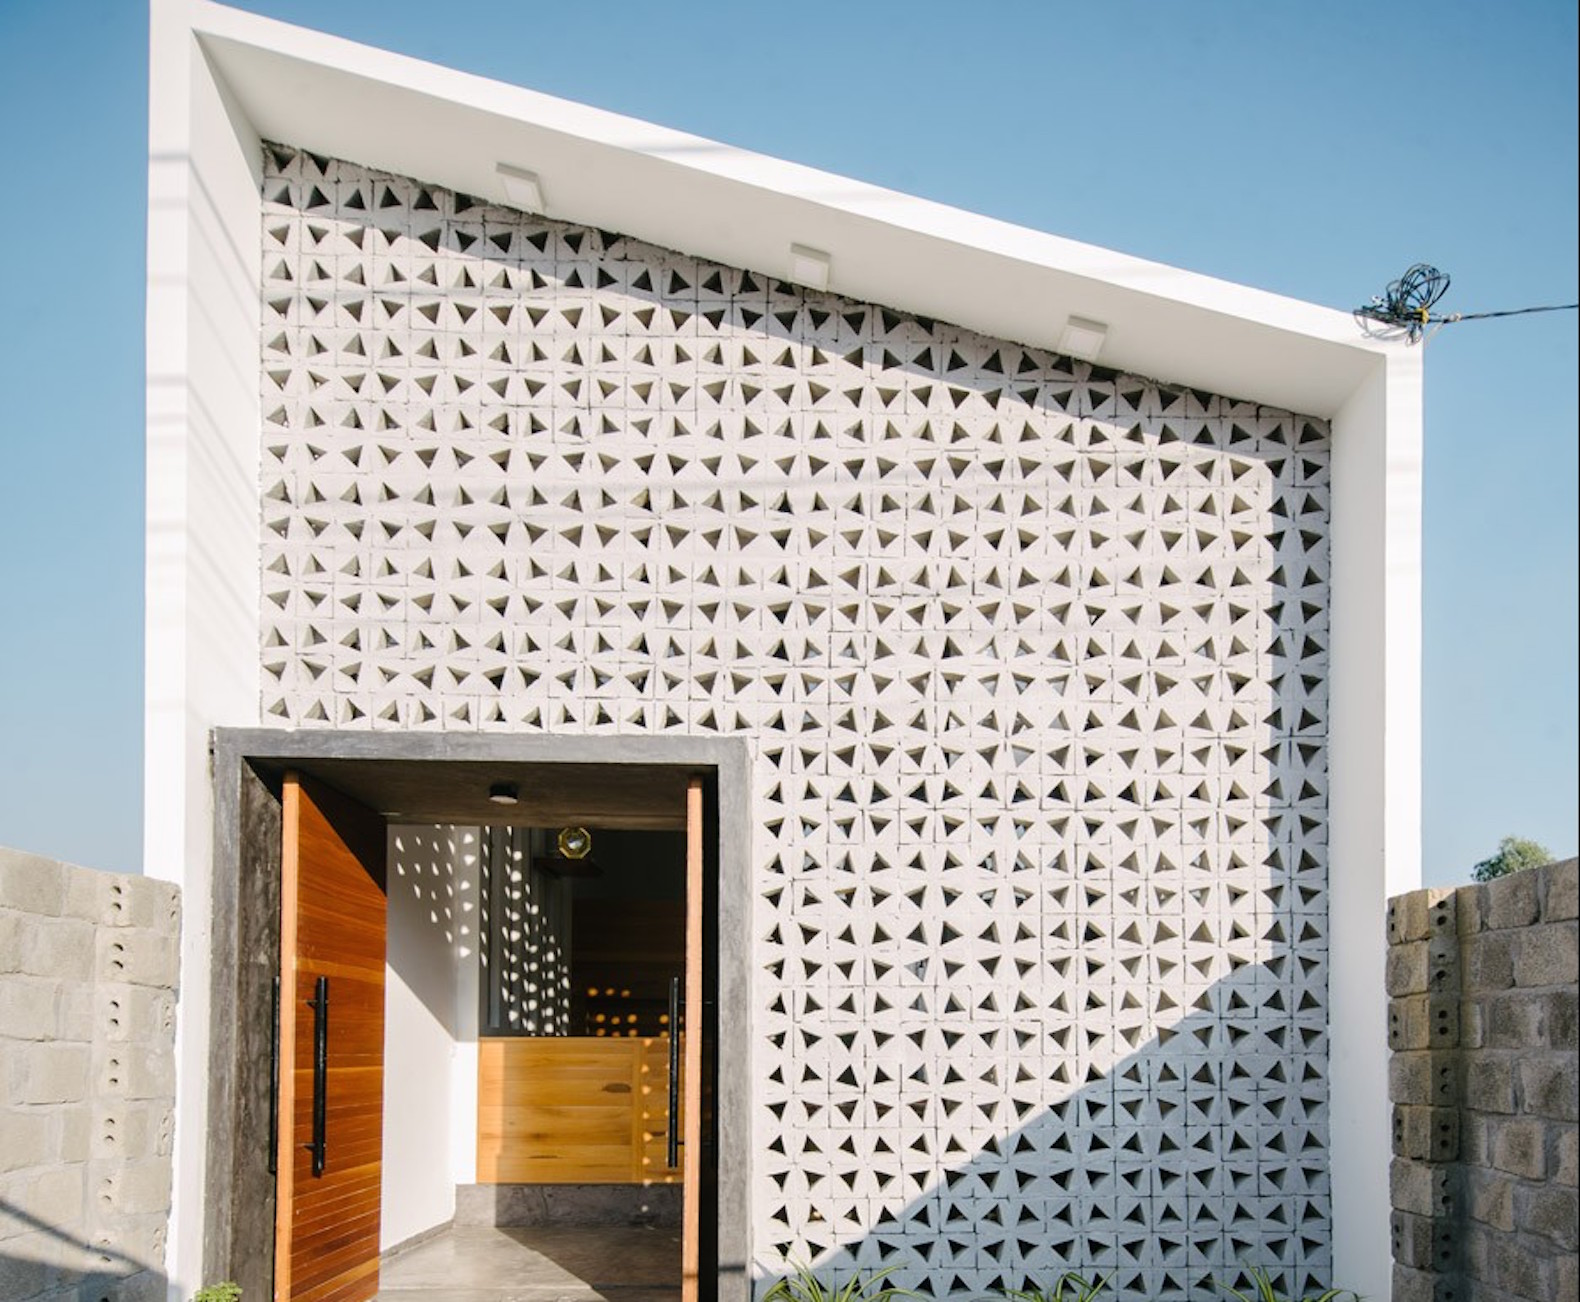 low cost perforated home in vietnam shows off the charms of concrete architecture - Who Designed The Vietnam Wall